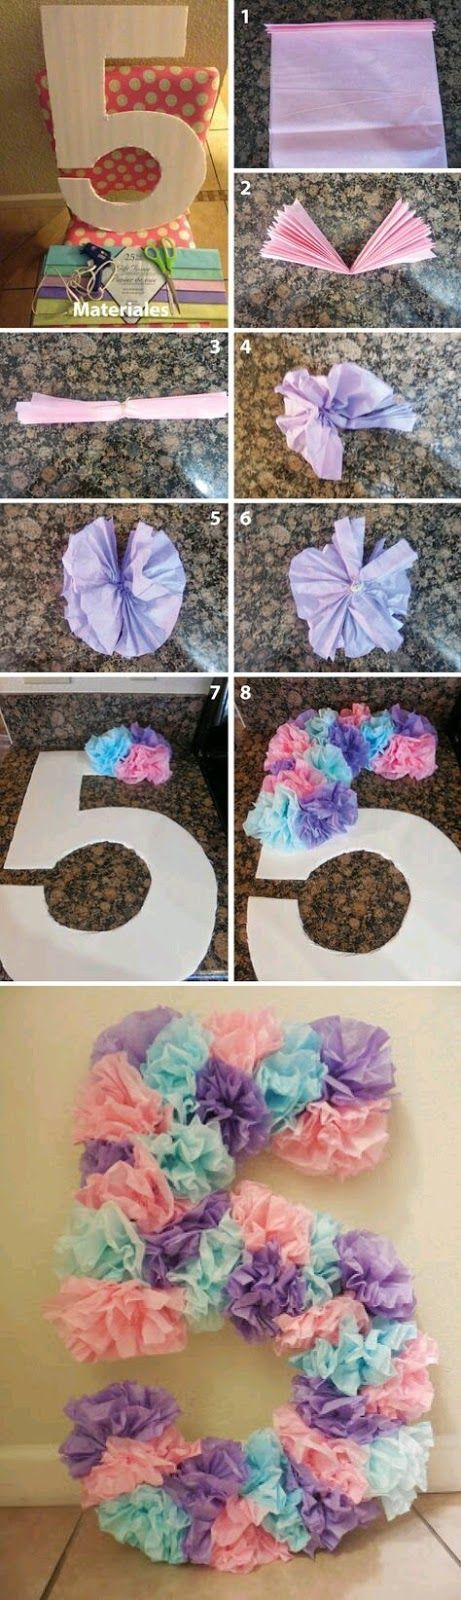 Best 25 decoracion con papel china ideas on pinterest for Decoracion con papel